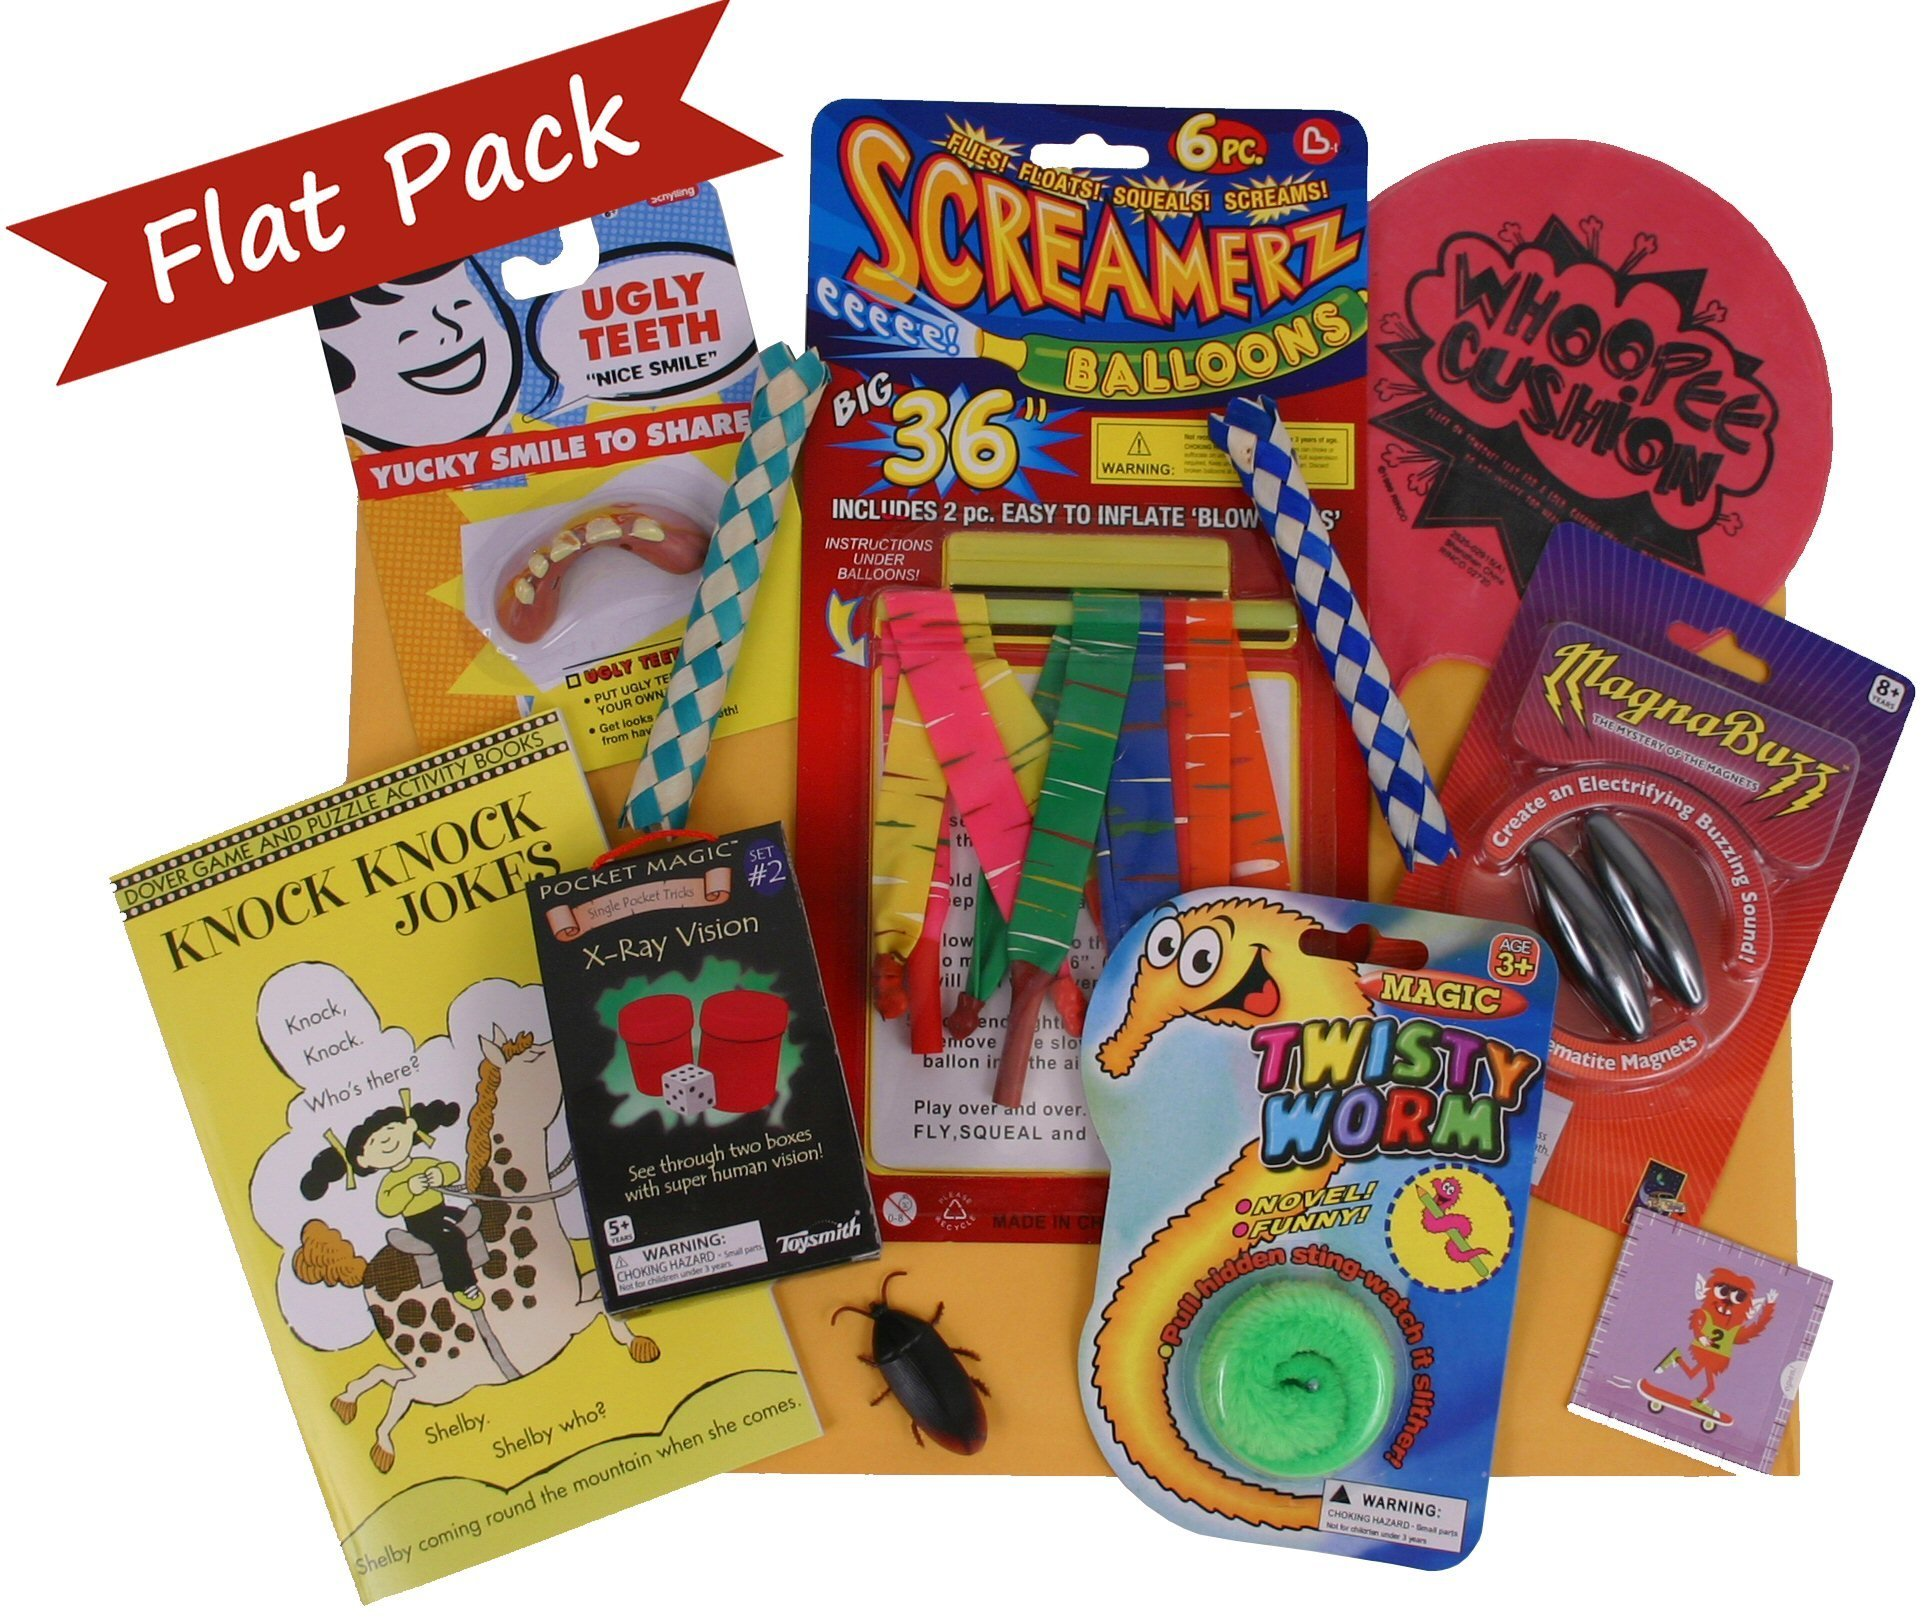 Beyond Bookmarks Jokester's Flat Pack Gift with Fun Gags and Jokes to Play at Summer Camp, Birthday Parties or Anytime